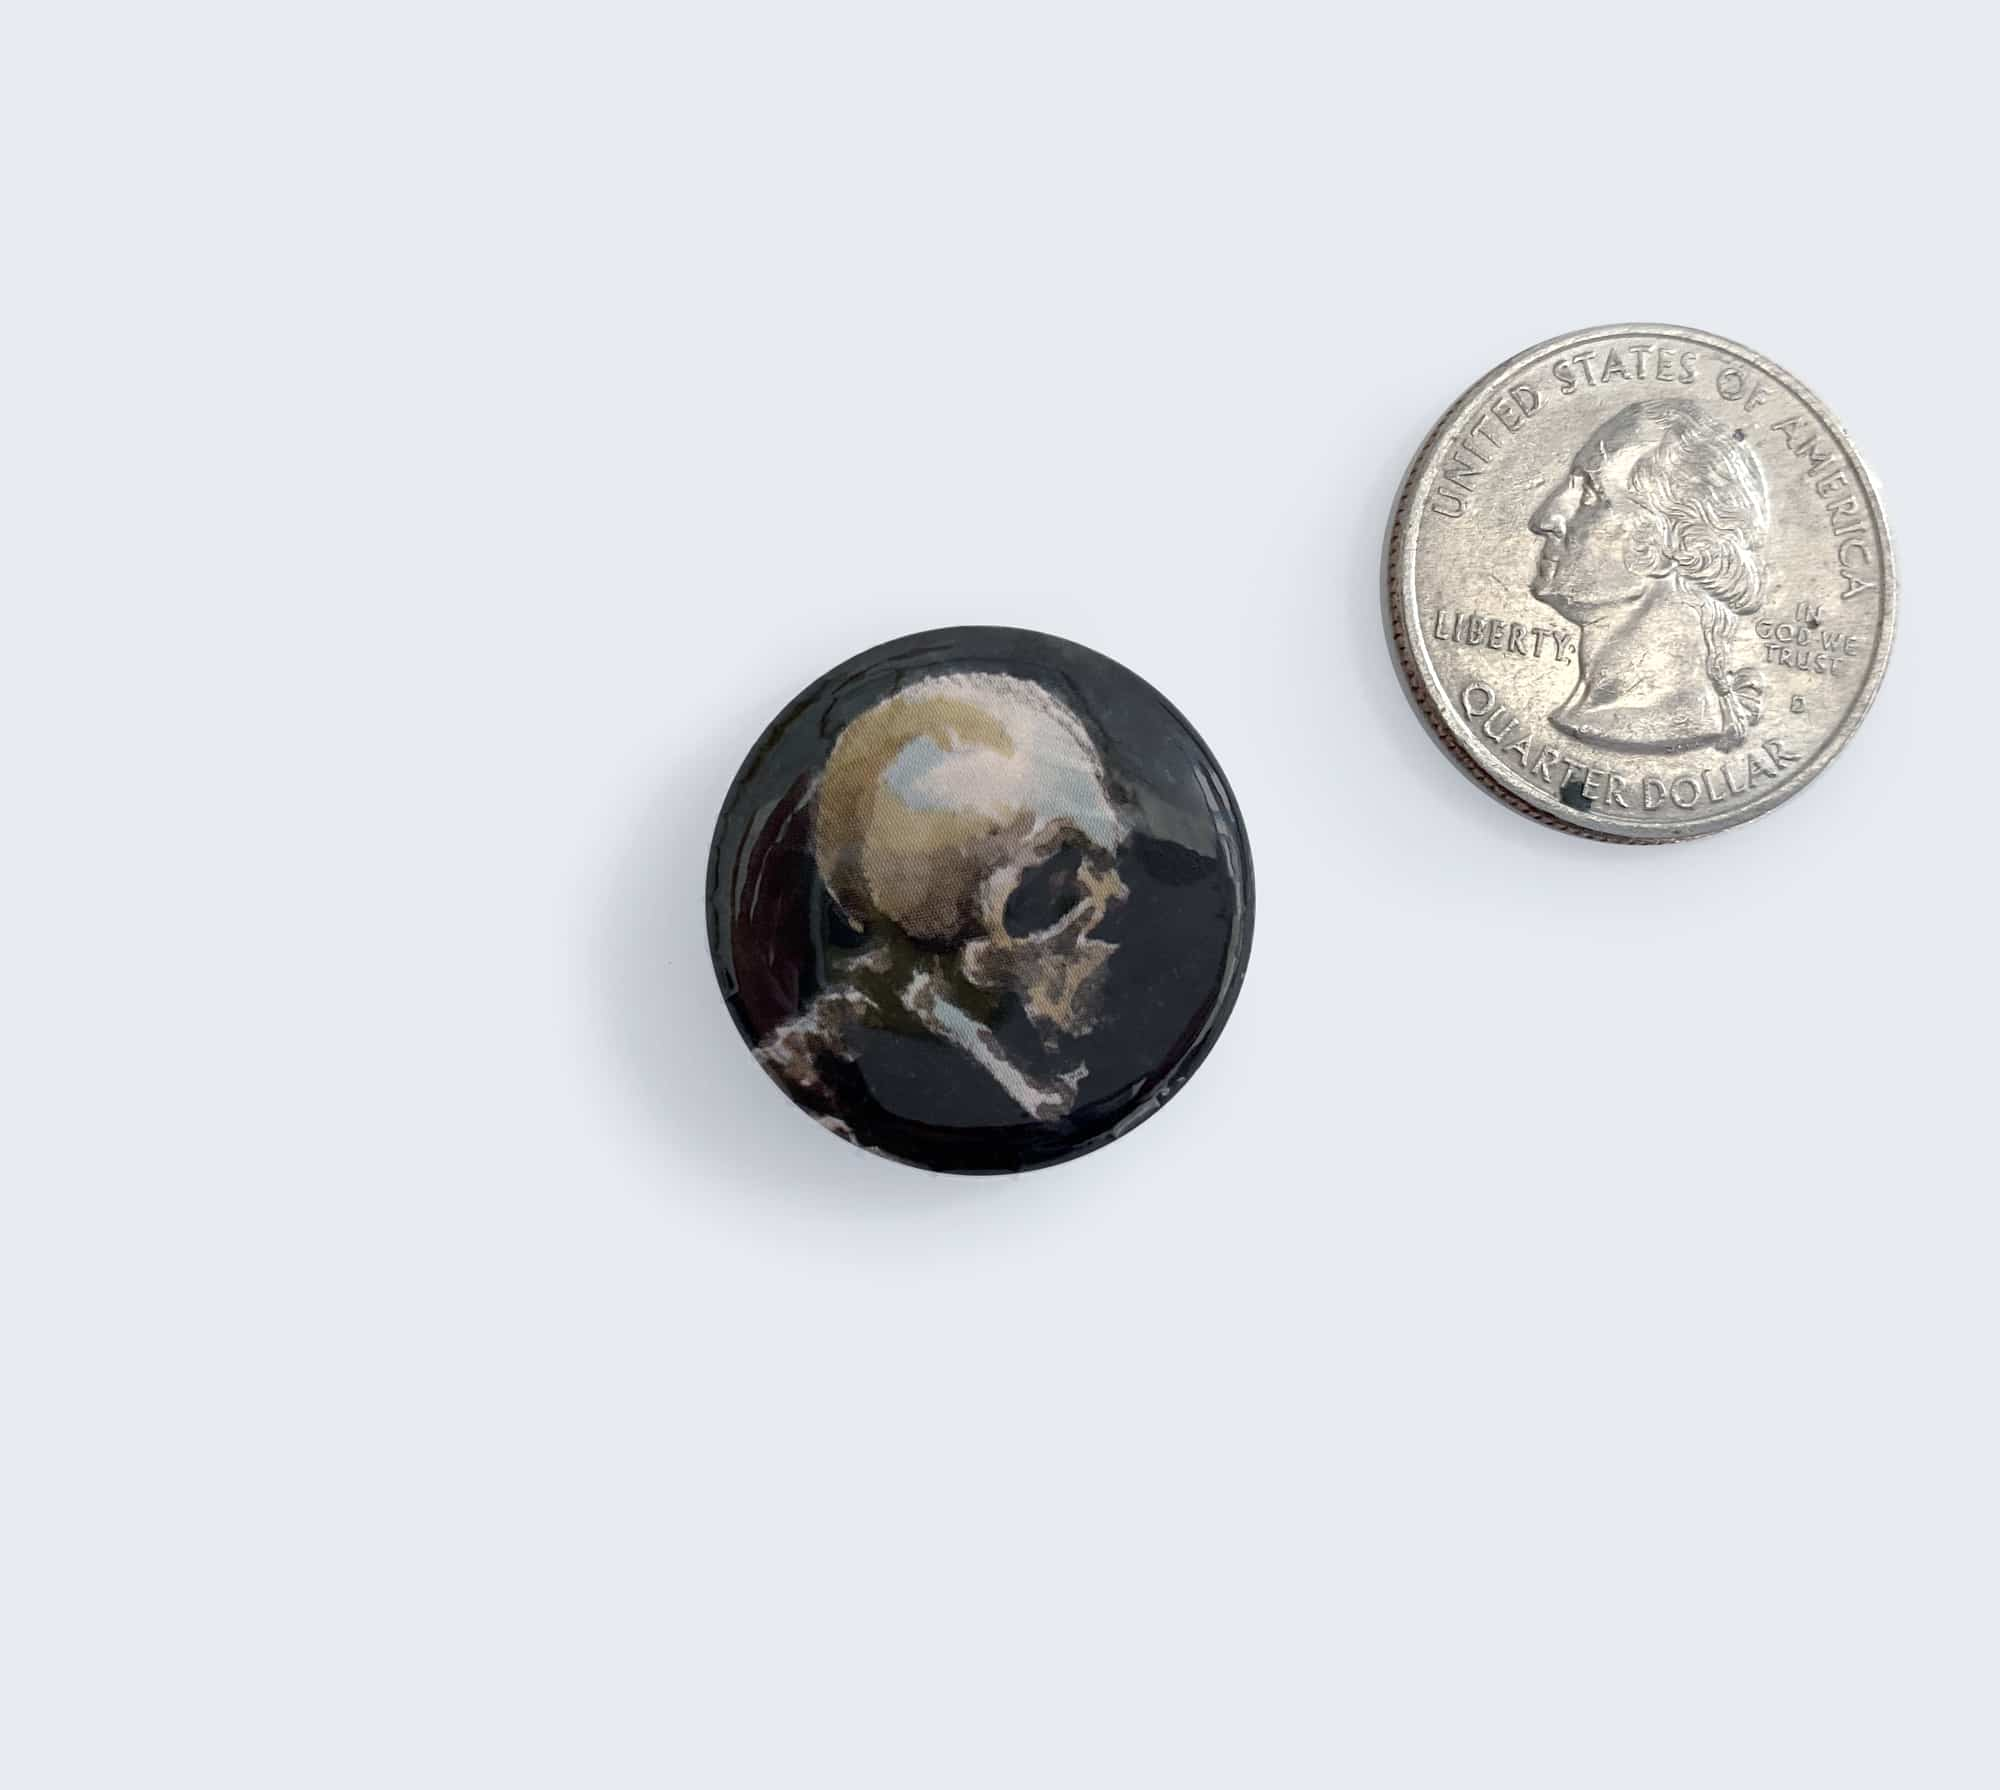 Skull Button - Pin Artwork by Wailing Wizard